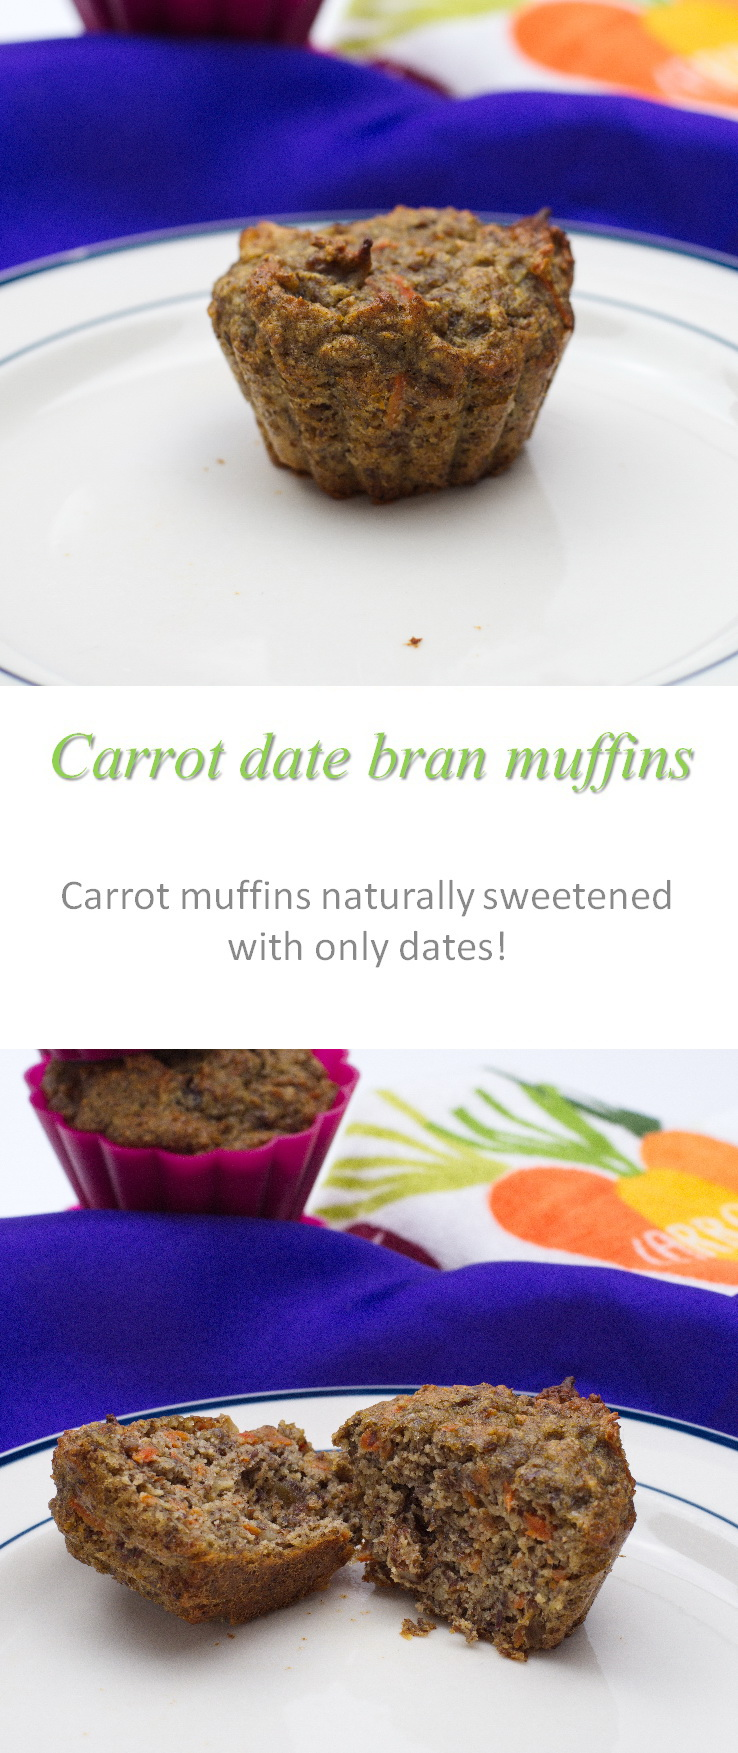 Carrot walnut bran muffins, with no added sugar - yummy enough for a snack, healthy enough for breakfast! #muffin #carrots #paleo #cookathome #glutenfree #dairyfree #noaddedsugar